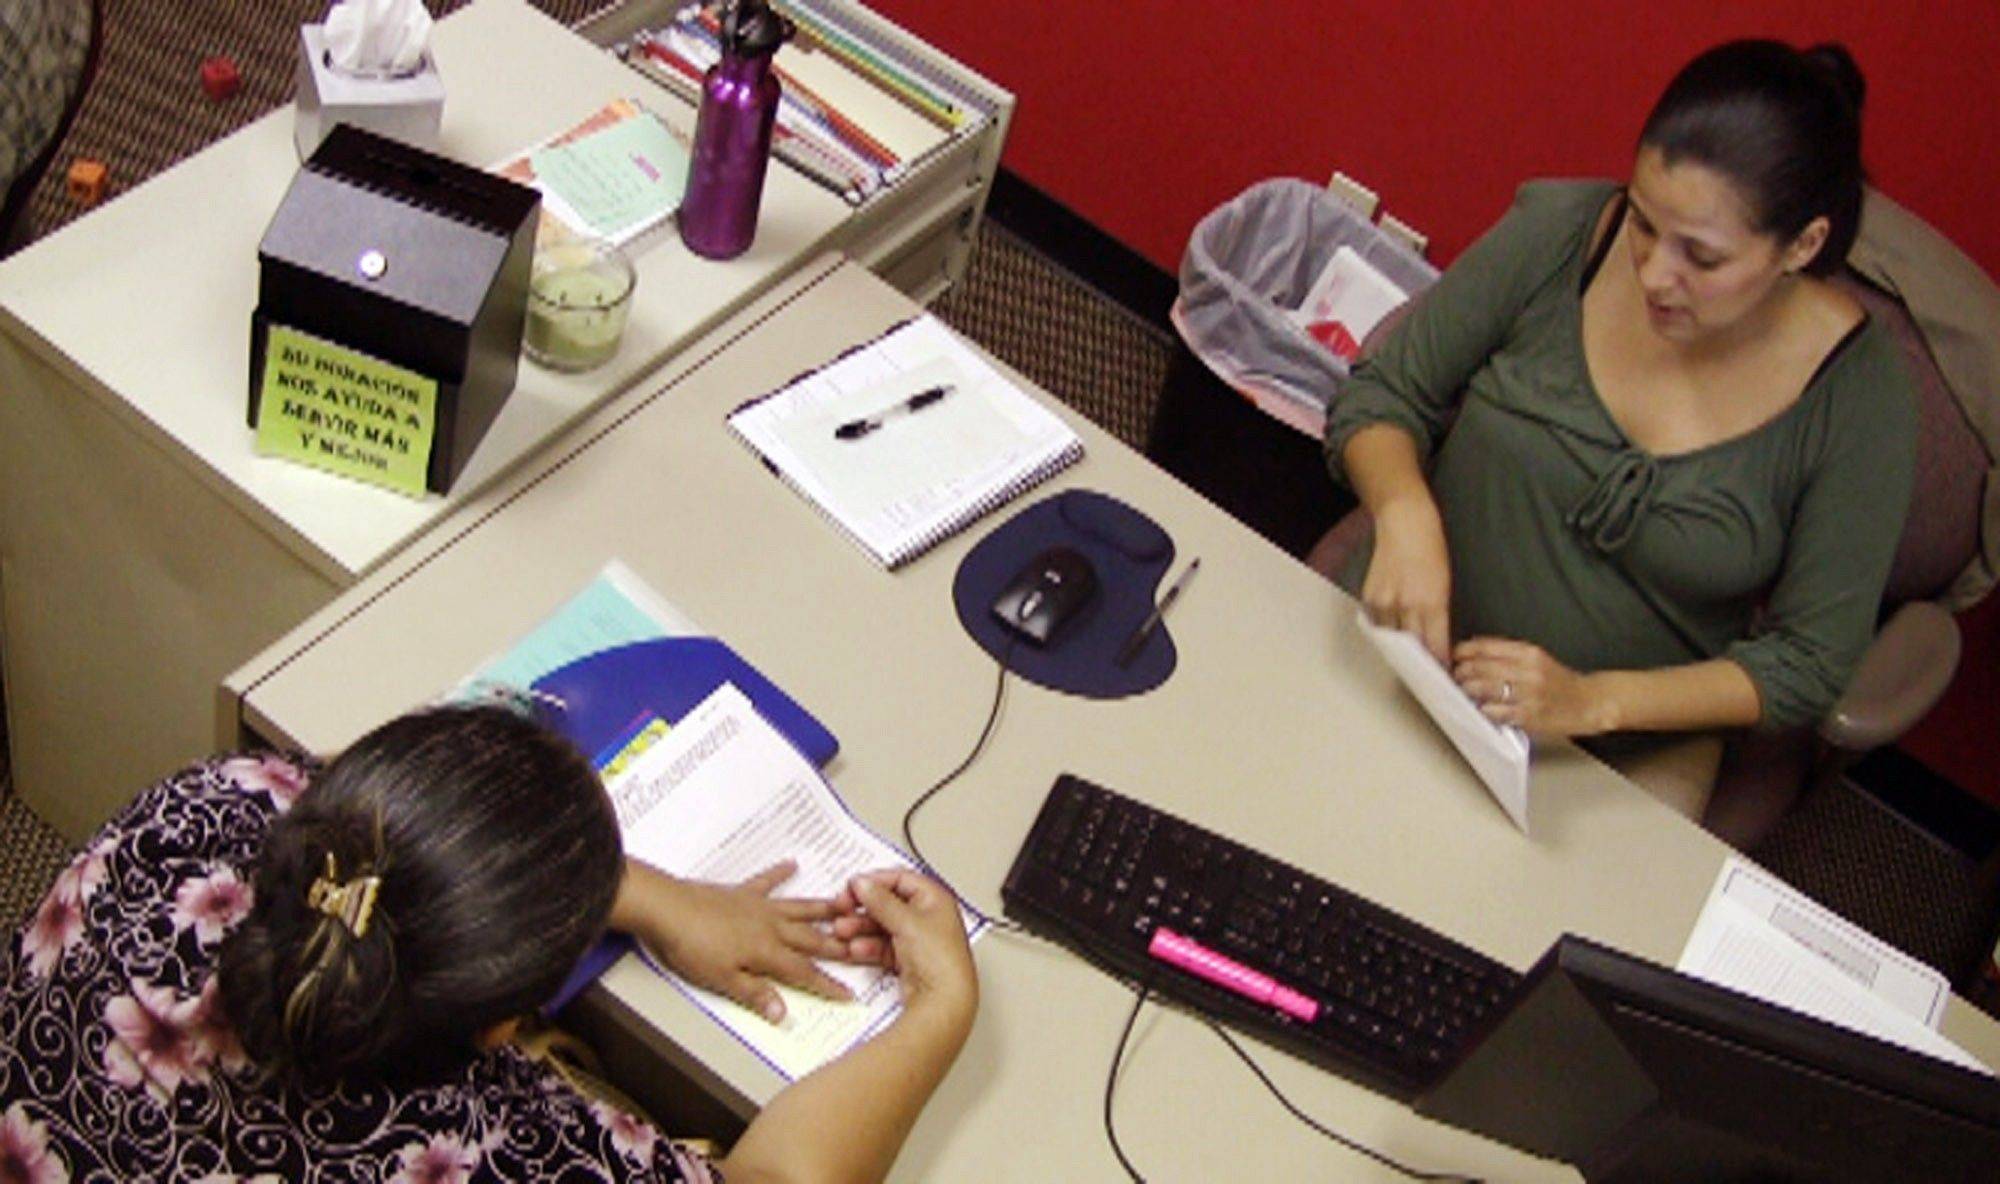 Jazmin Rivera, right, a case manager with the Hispanic Interest Coalition of Alabama, works with an unidentified immigrant in her office in Birmingham, Ala. Parents living in the country illegally are scared of deportation under Alabama's new immigration law, and Rivera has helped many with paperwork to provide care for their children in case the parents are arrested.